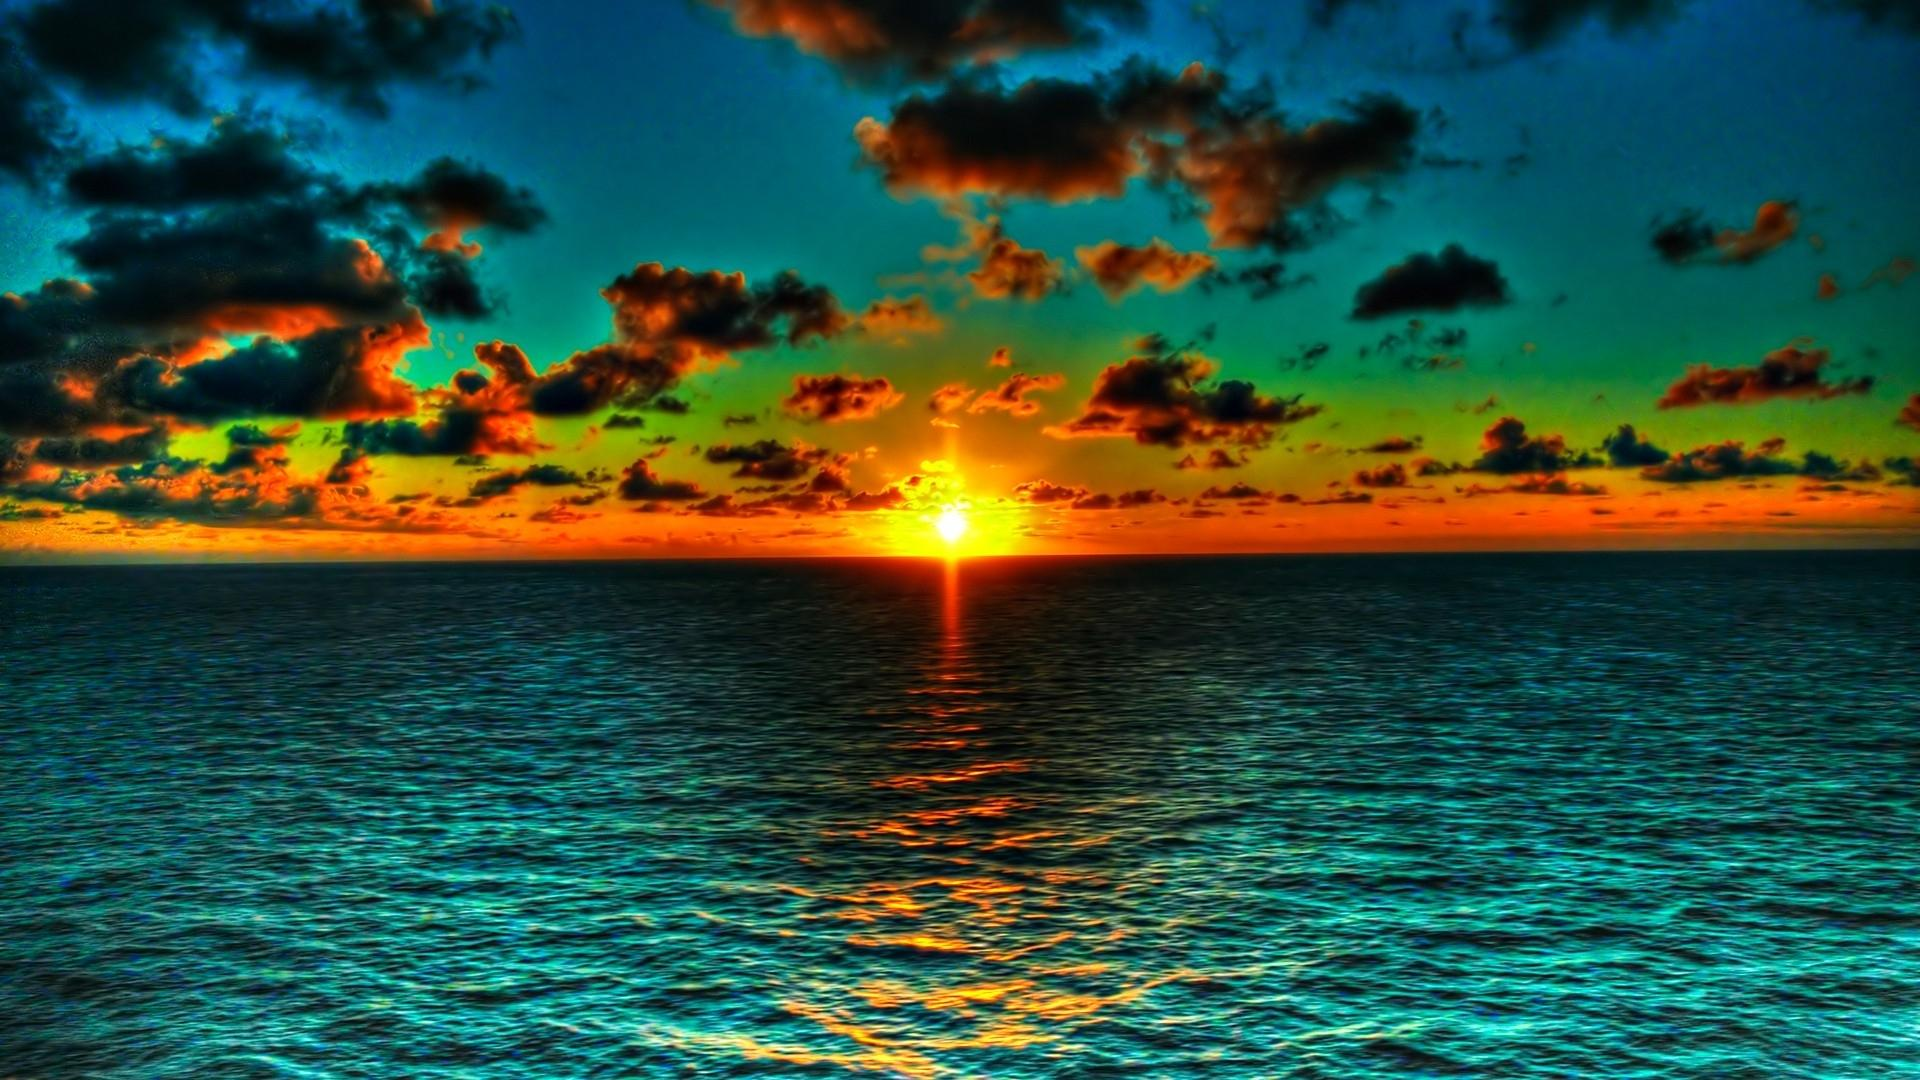 Sunset Wallpapers HD